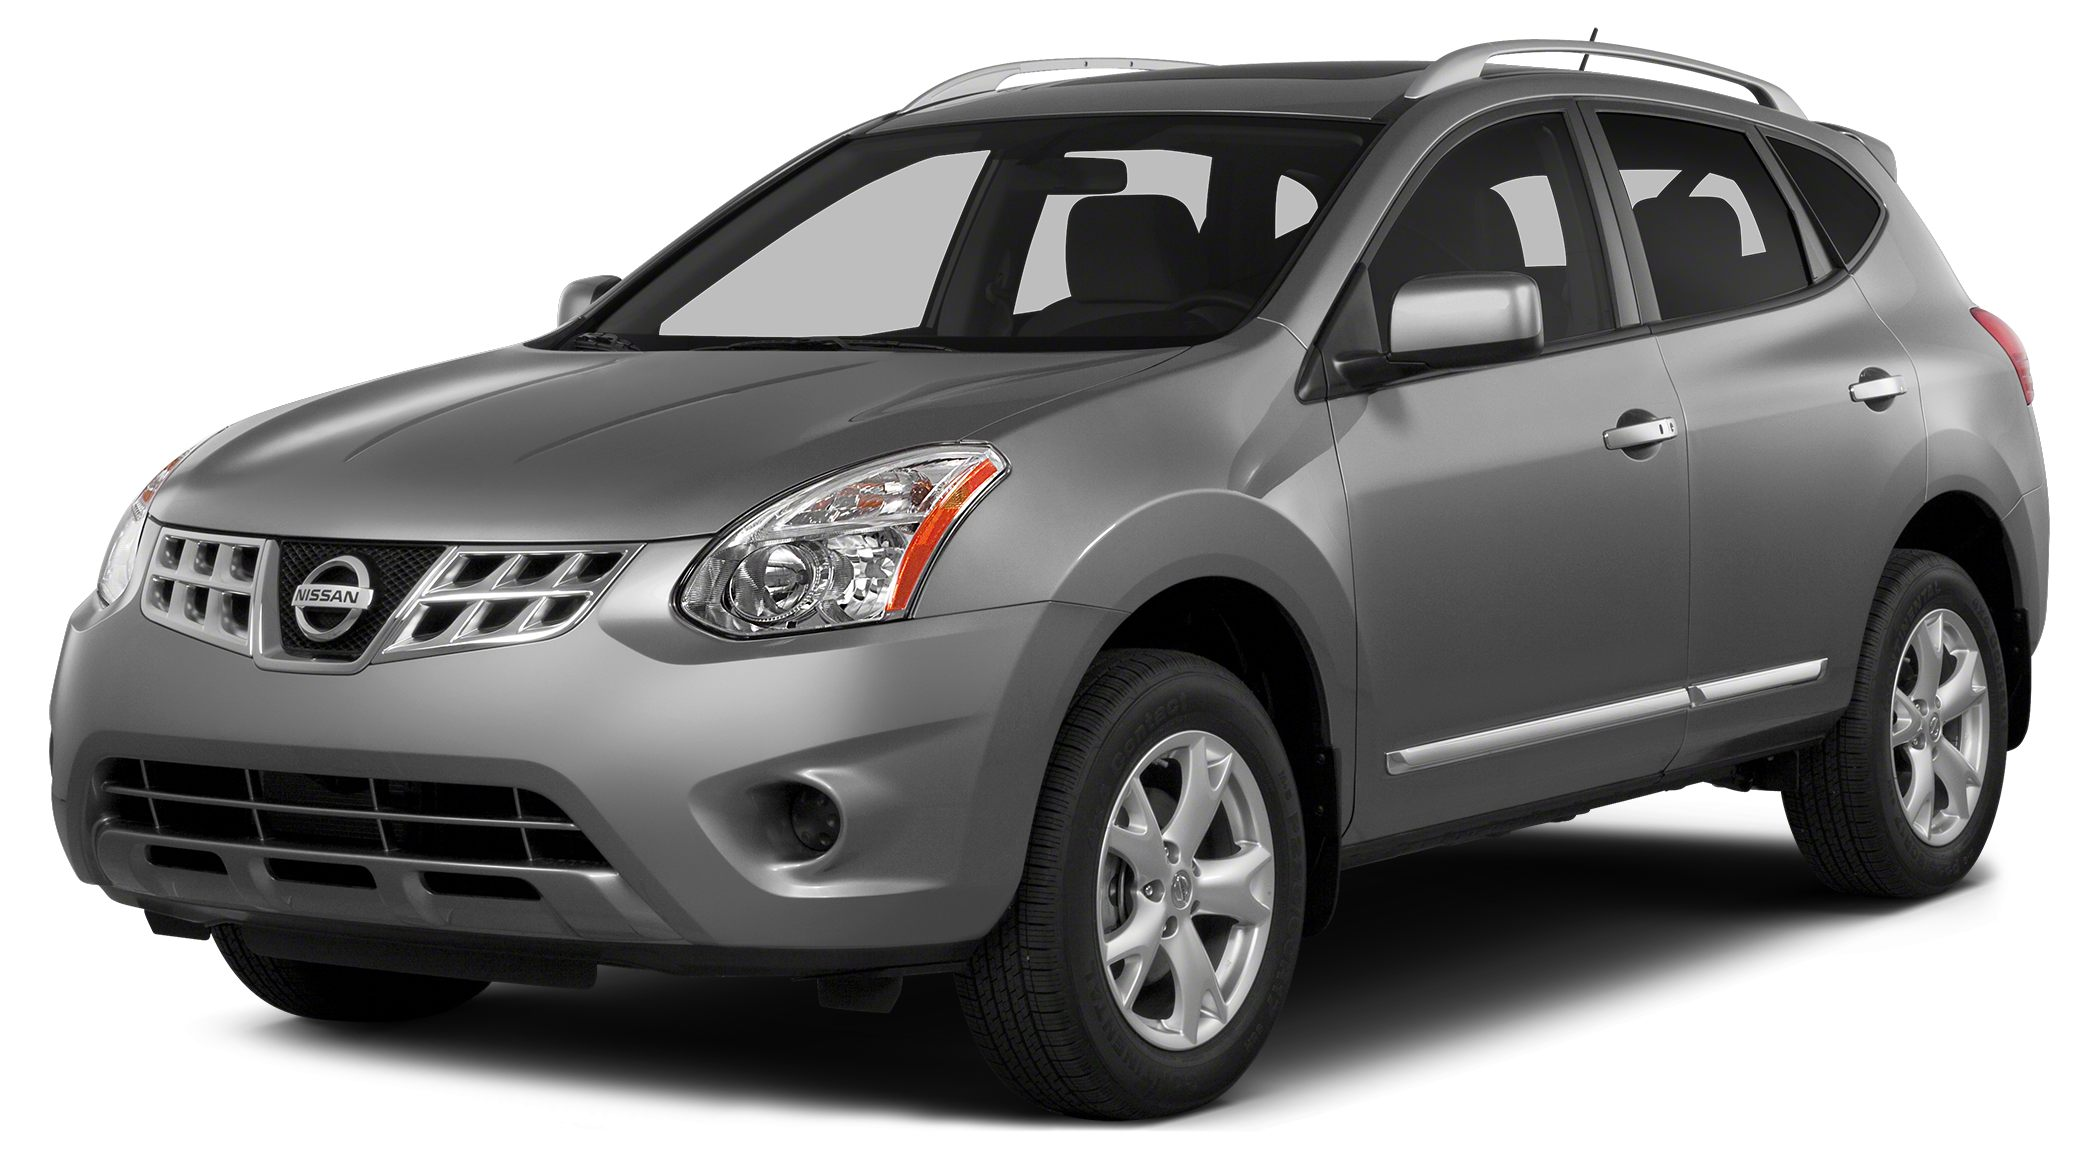 2013 Nissan Rogue S 24K MILES ROGUE BLUETOOTH LOW MILES VERY CLEAN CROSSOVER Miles 24334Colo